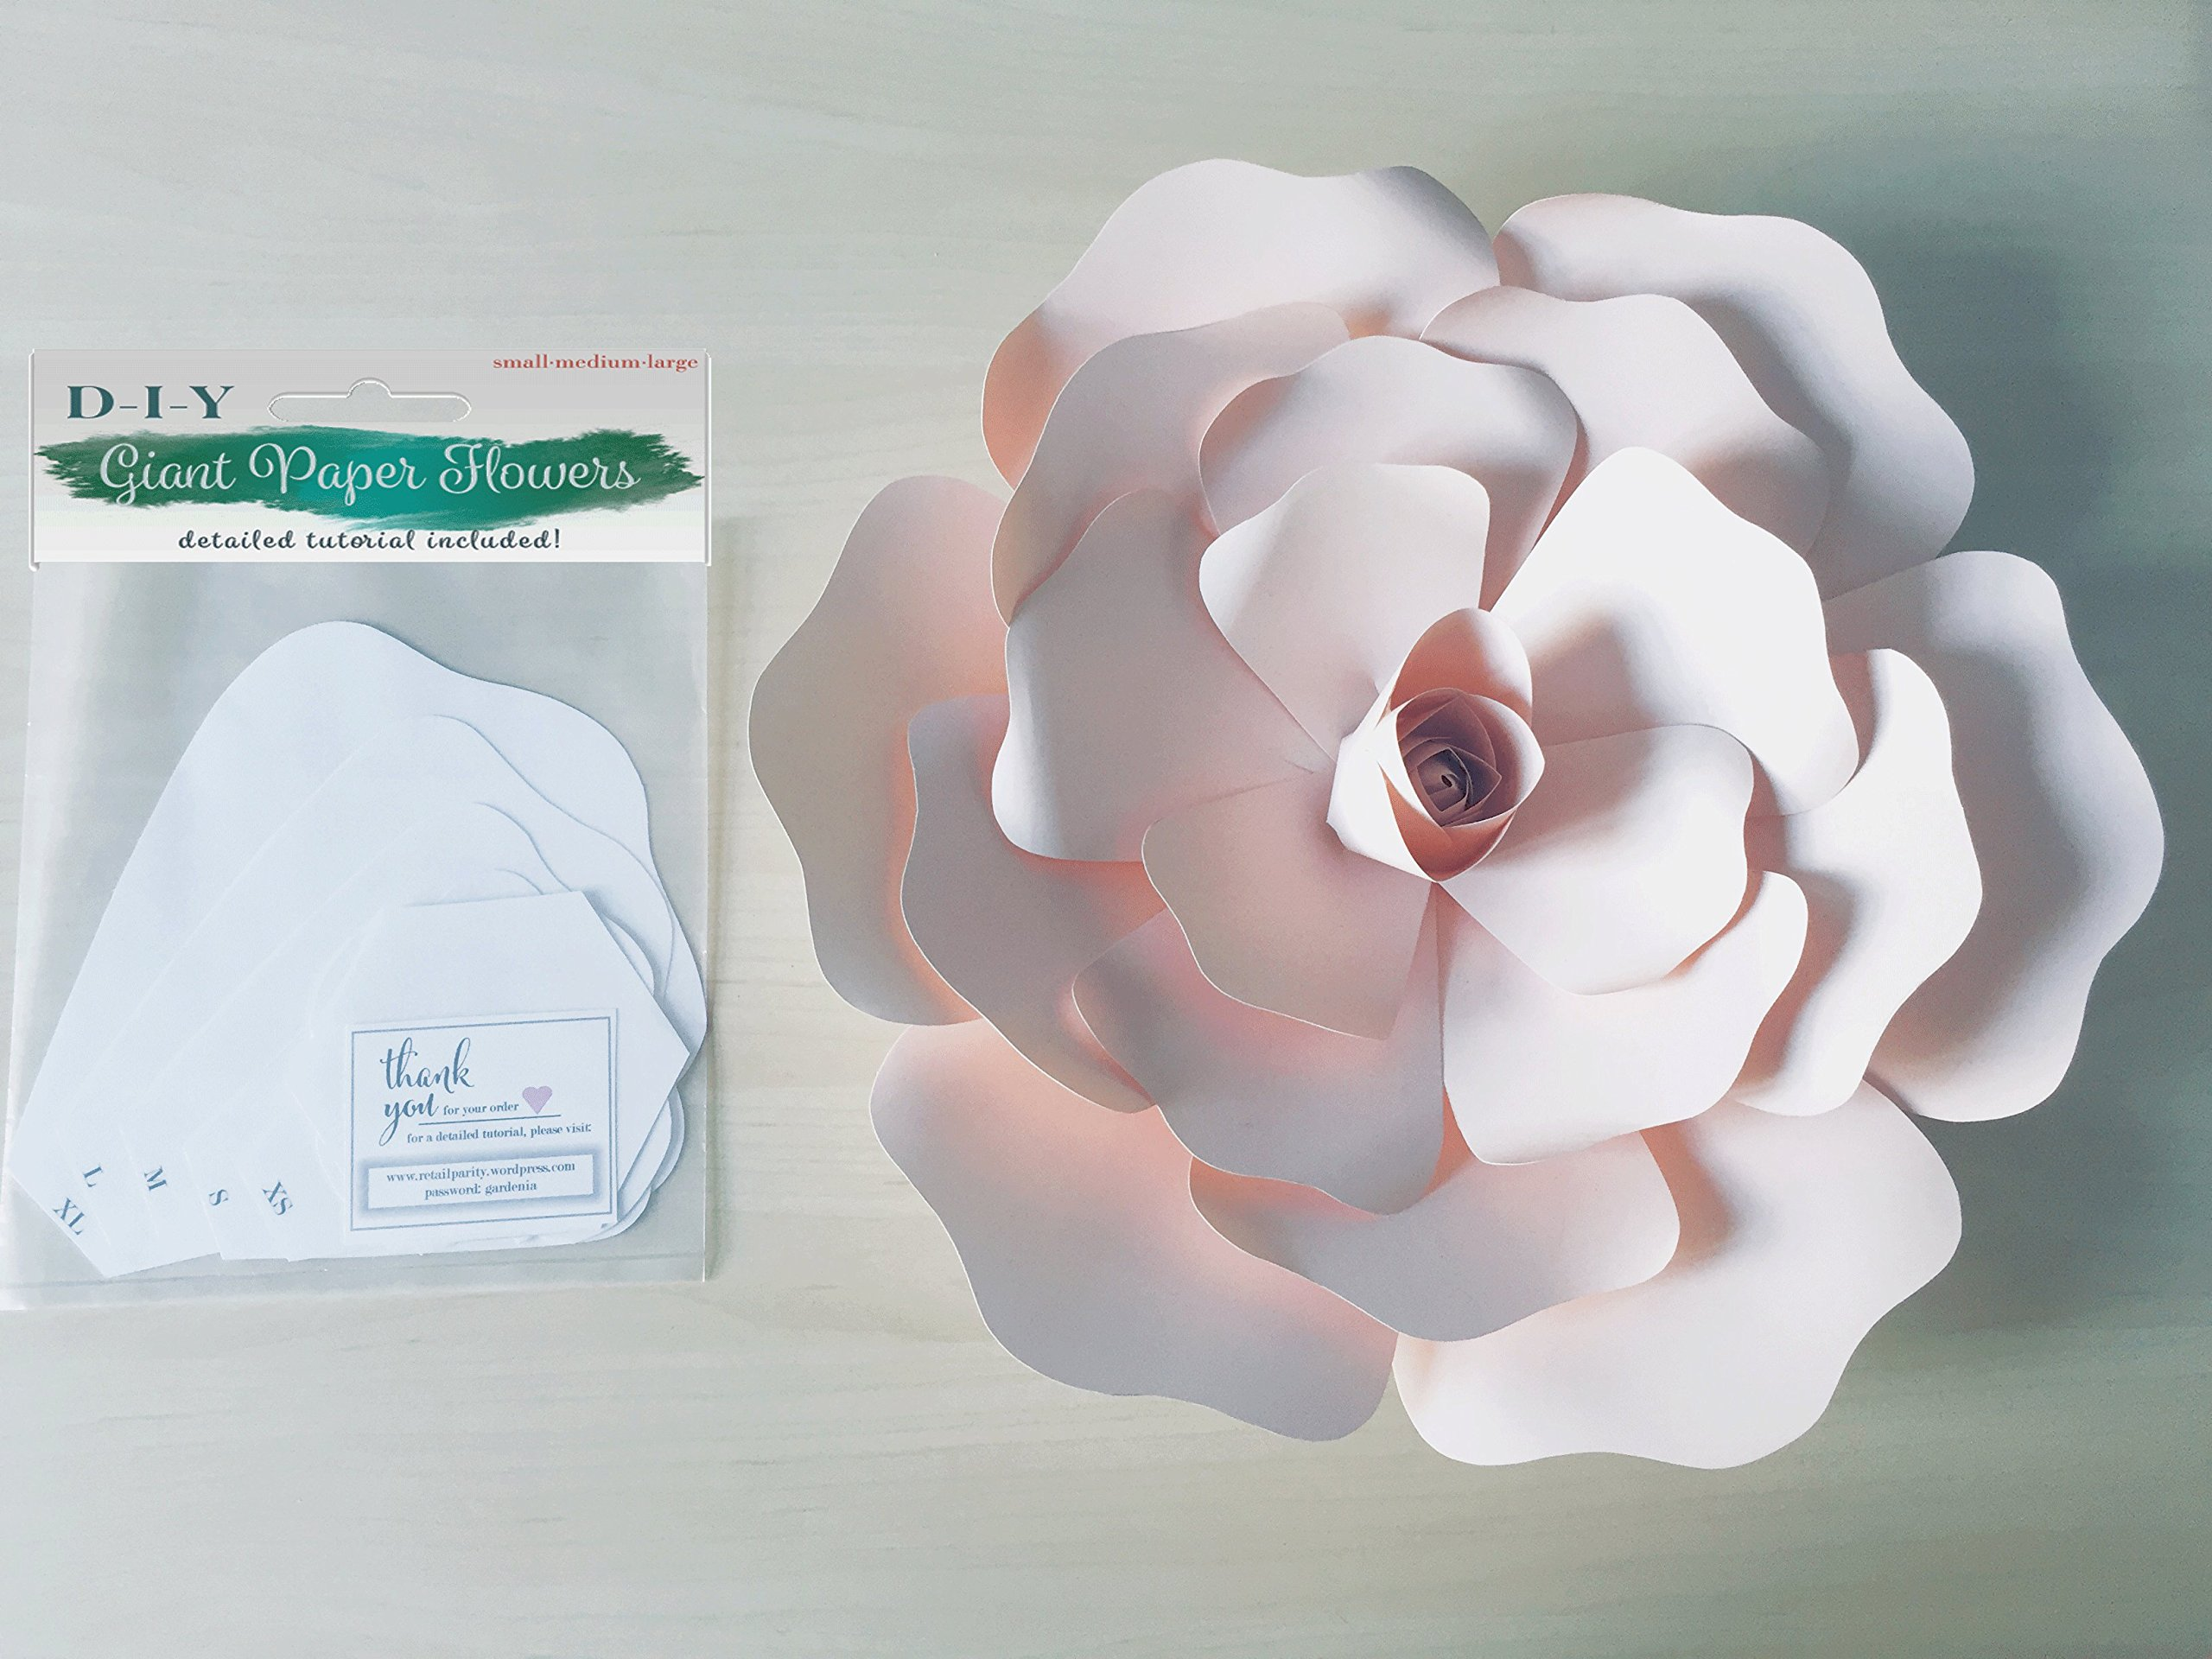 Paper Flower Template Kit Diy Wall Decoration Instructions